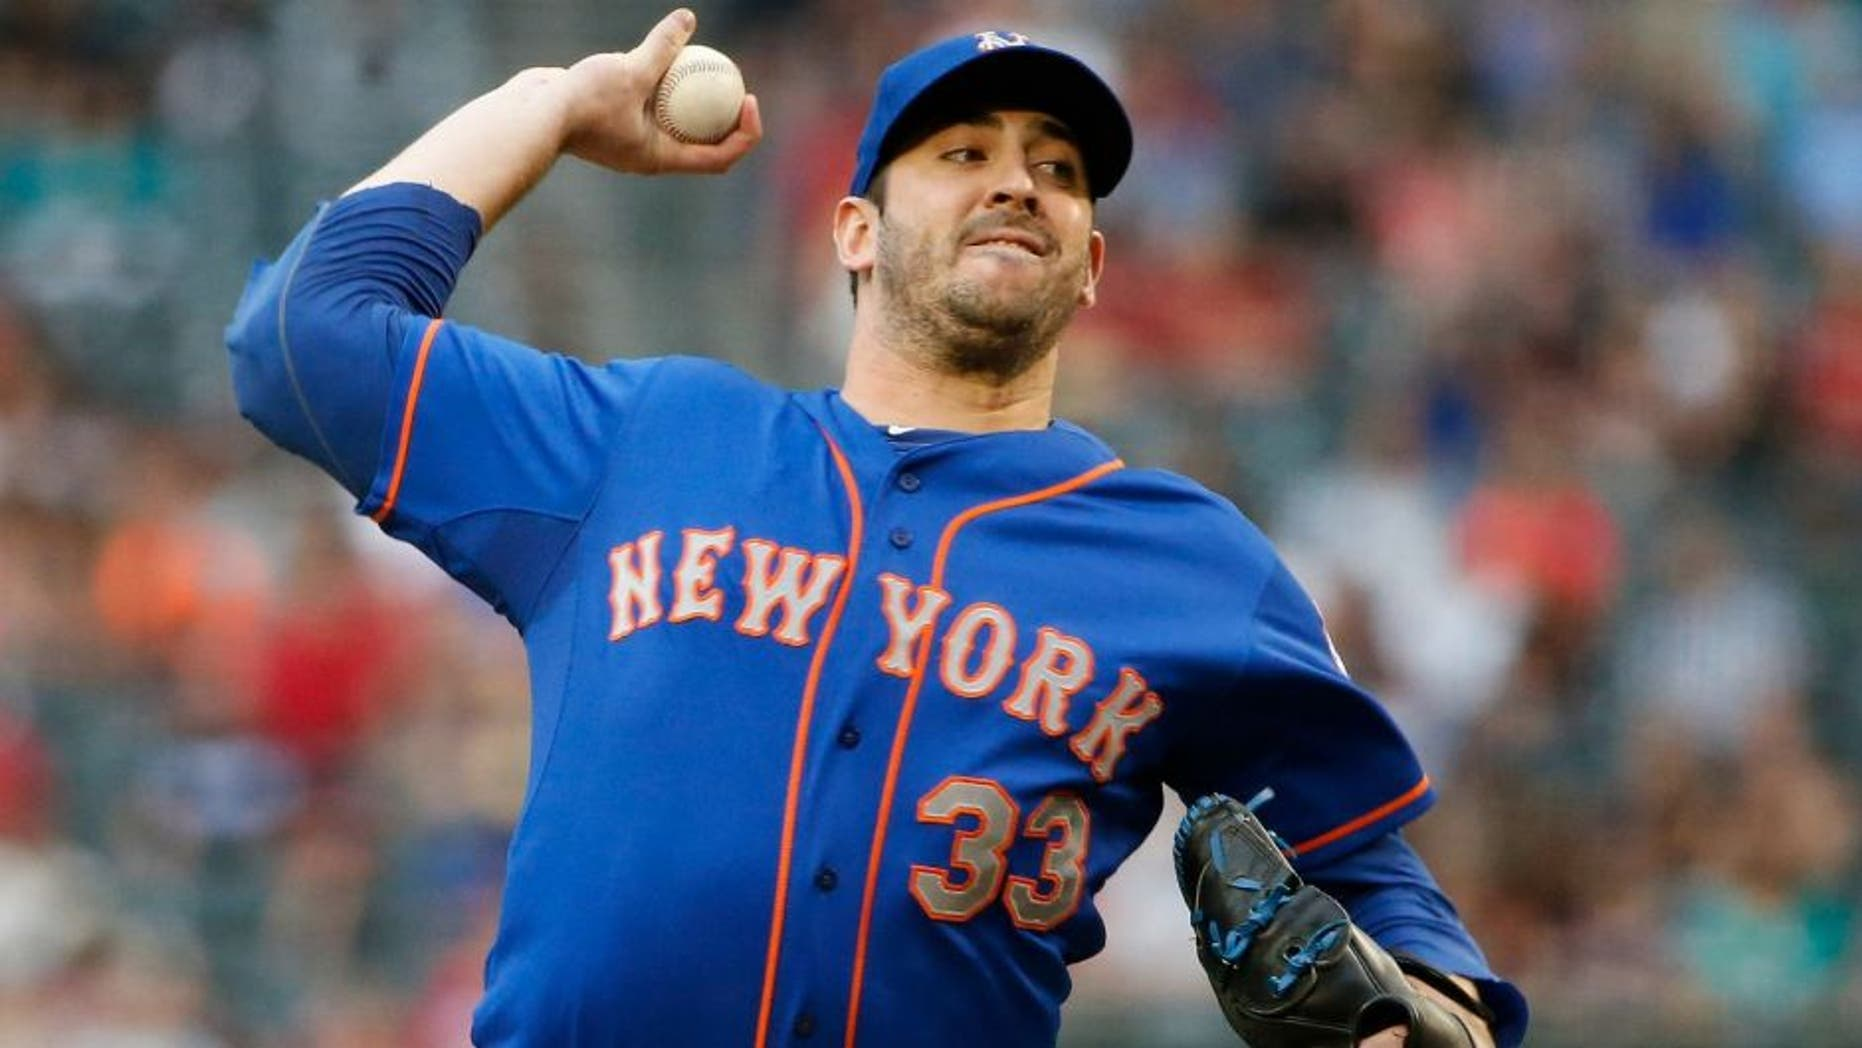 New York Mets' Matt Harvey throws a pitch against the Arizona Diamondbacks during the first inning of a baseball game Thursday, June 4, 2015, in Phoenix. (AP Photo/Ross D. Franklin)